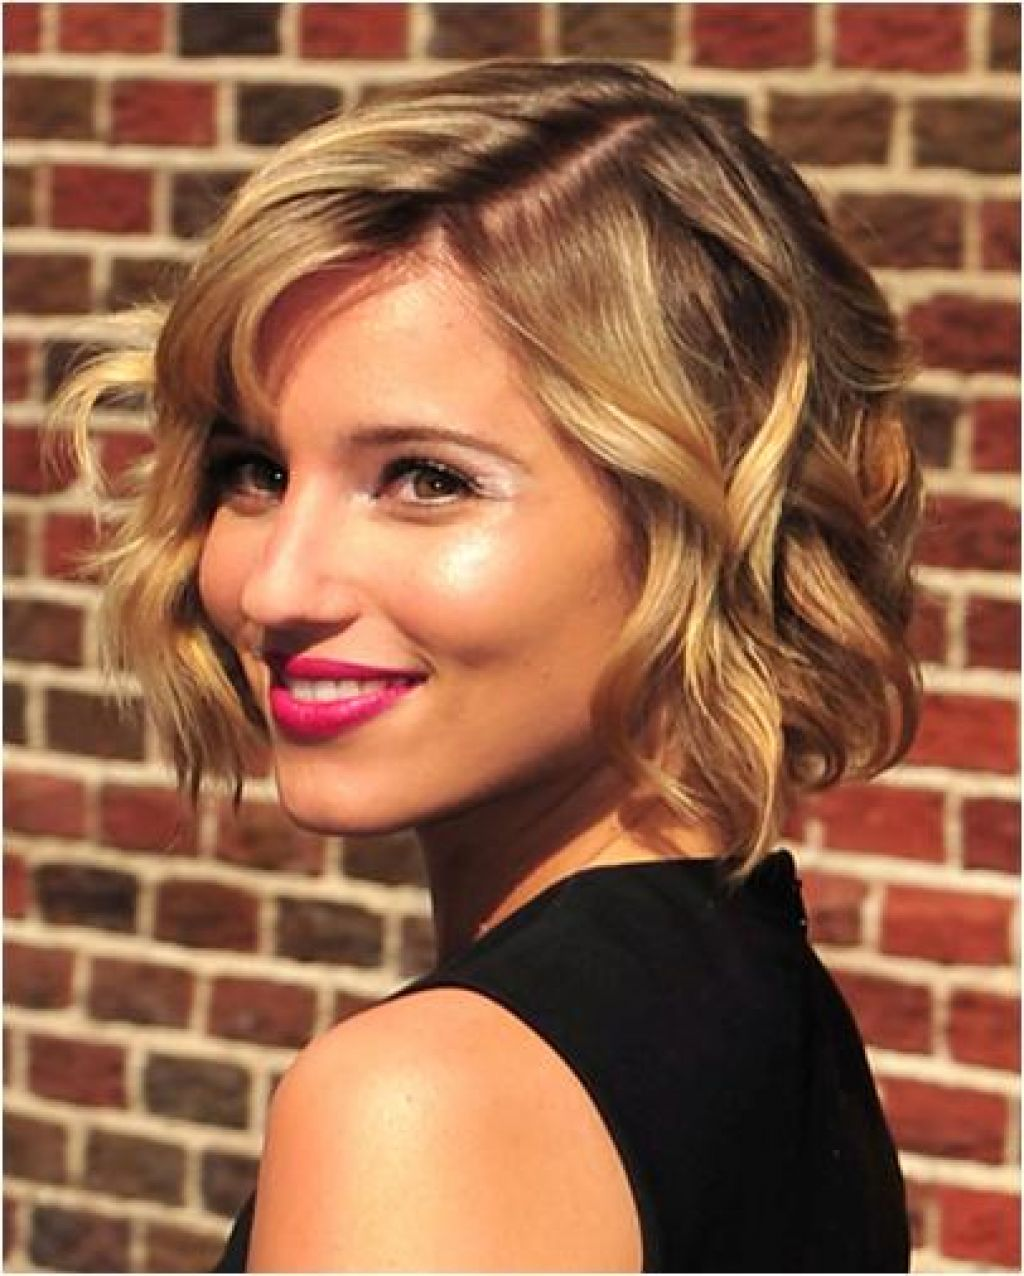 internex posed: hairstyles for heart shaped faces